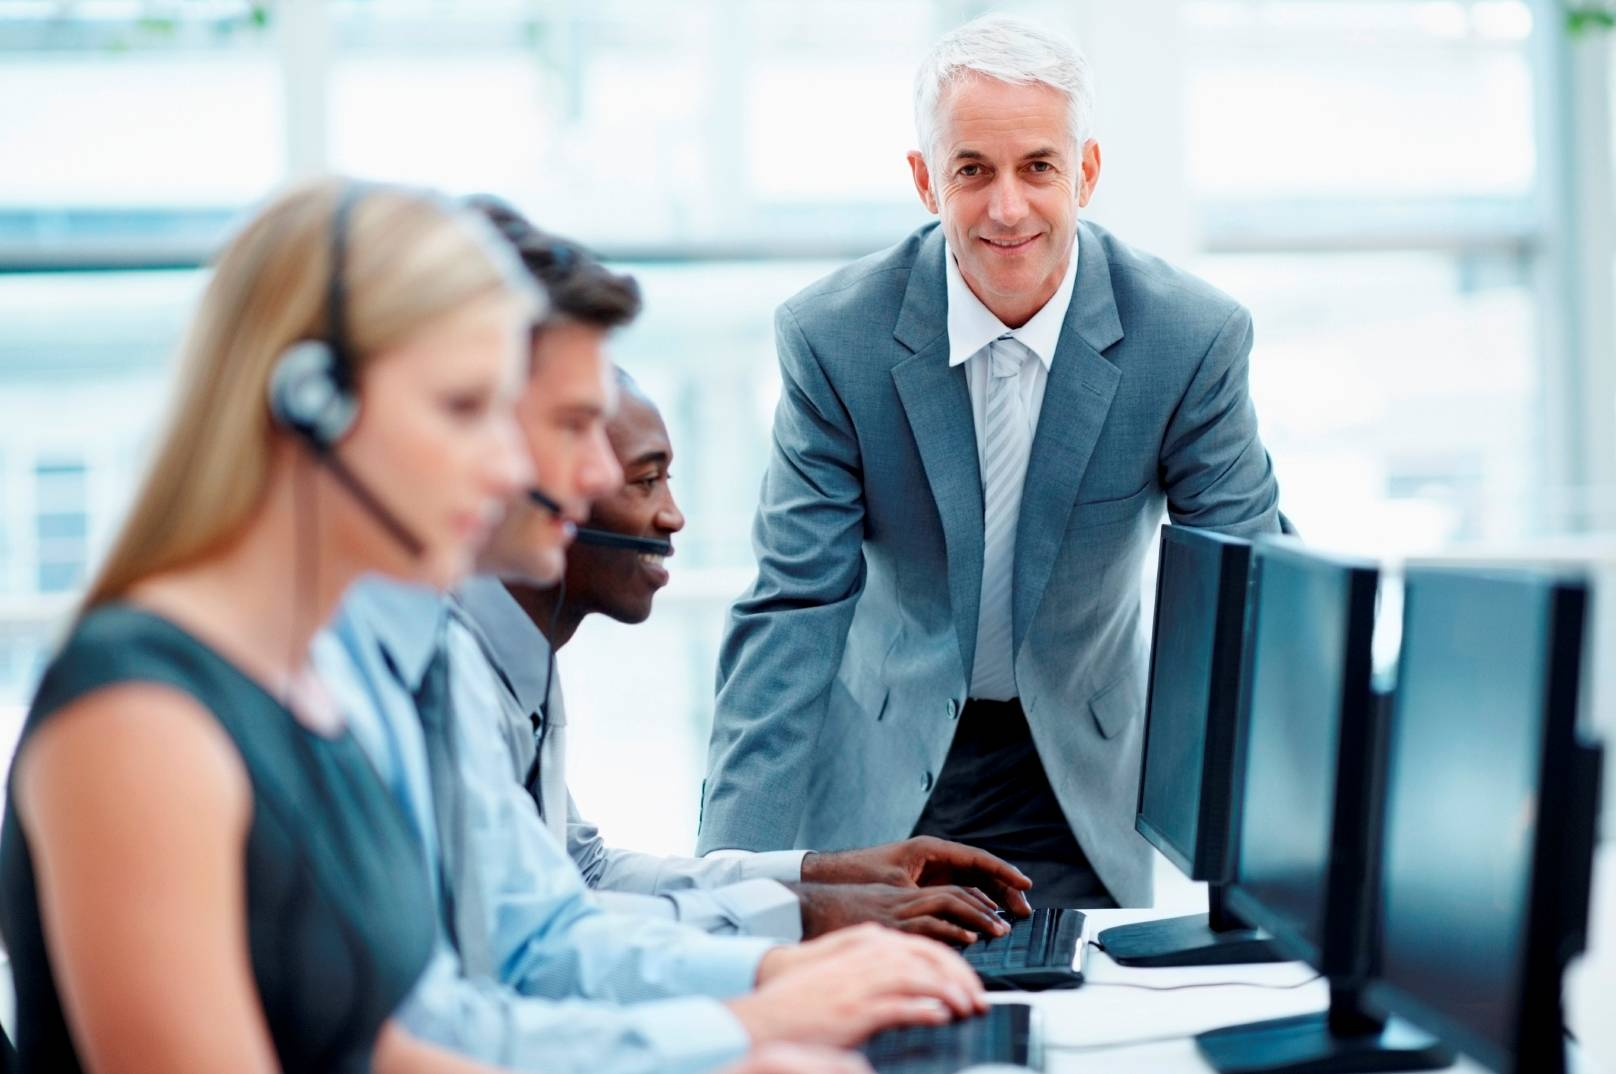 sales manager Sales managers' responsibilities vary with the size of their organizations however, most sales managers direct the distribution of goods and services by assigning sales territories, setting sales goals, and establishing training programs for the organization's sales representatives.